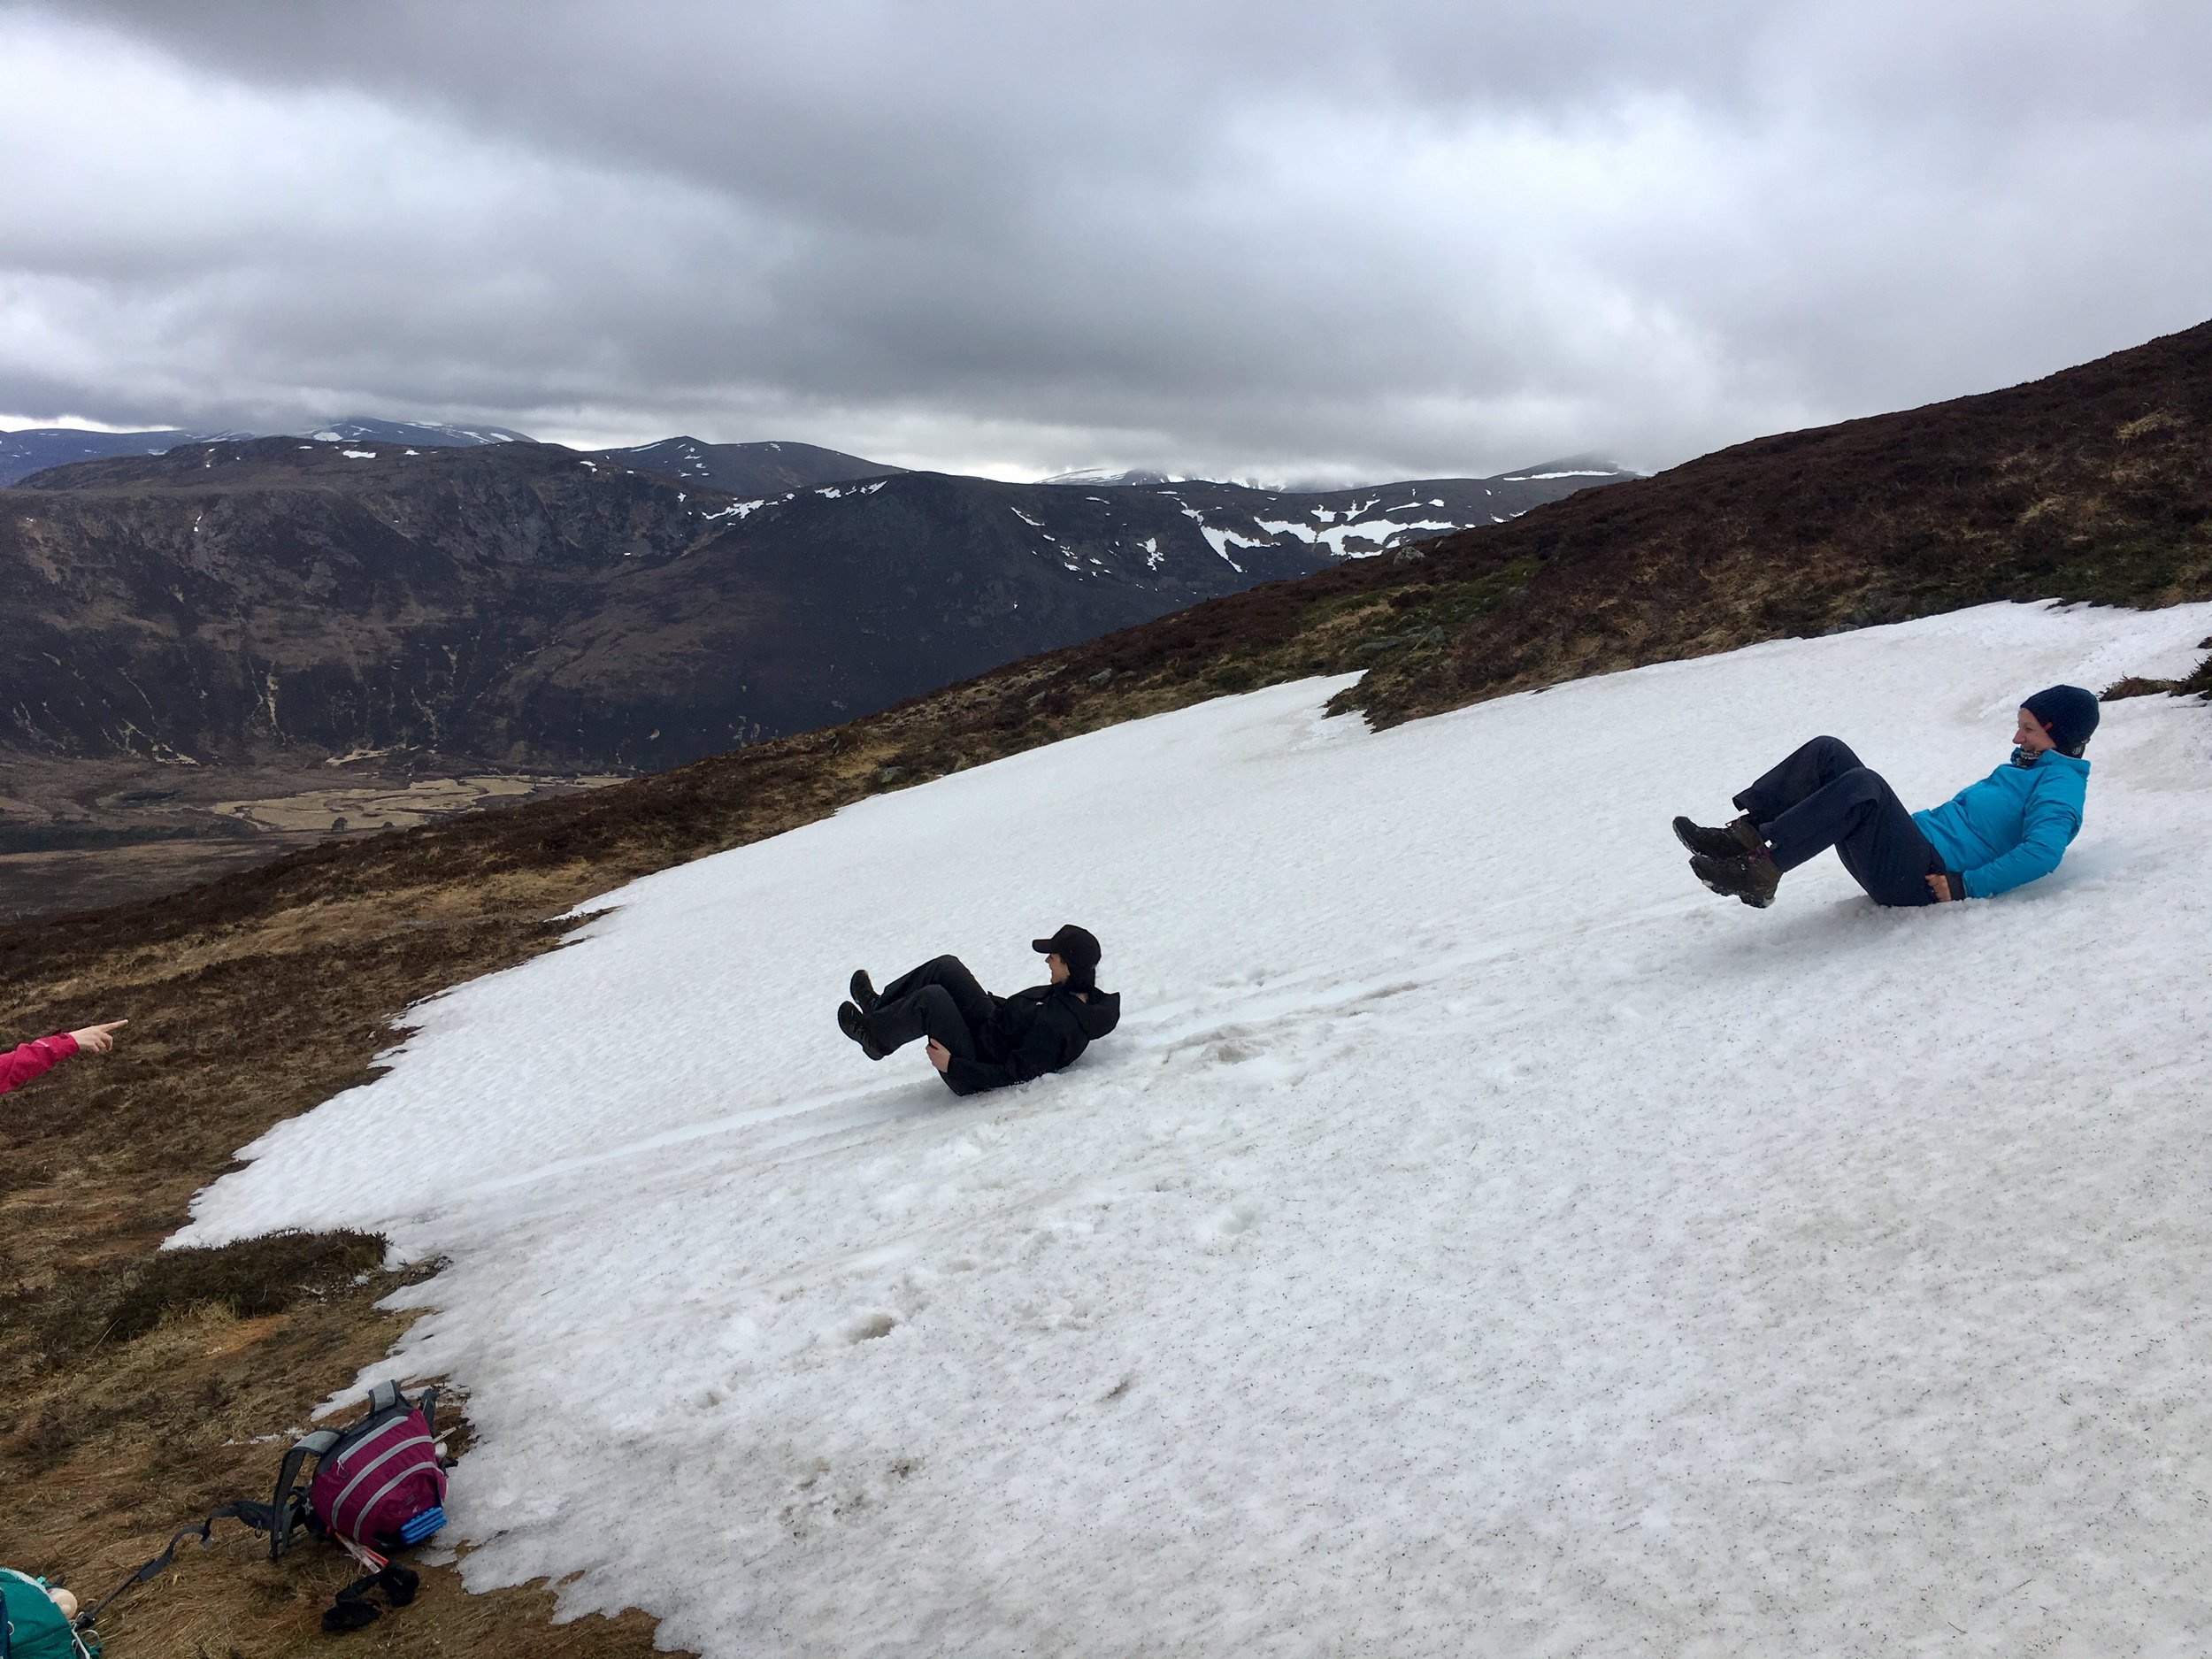 Having fun in the snow patches, no dangers at the bottom!